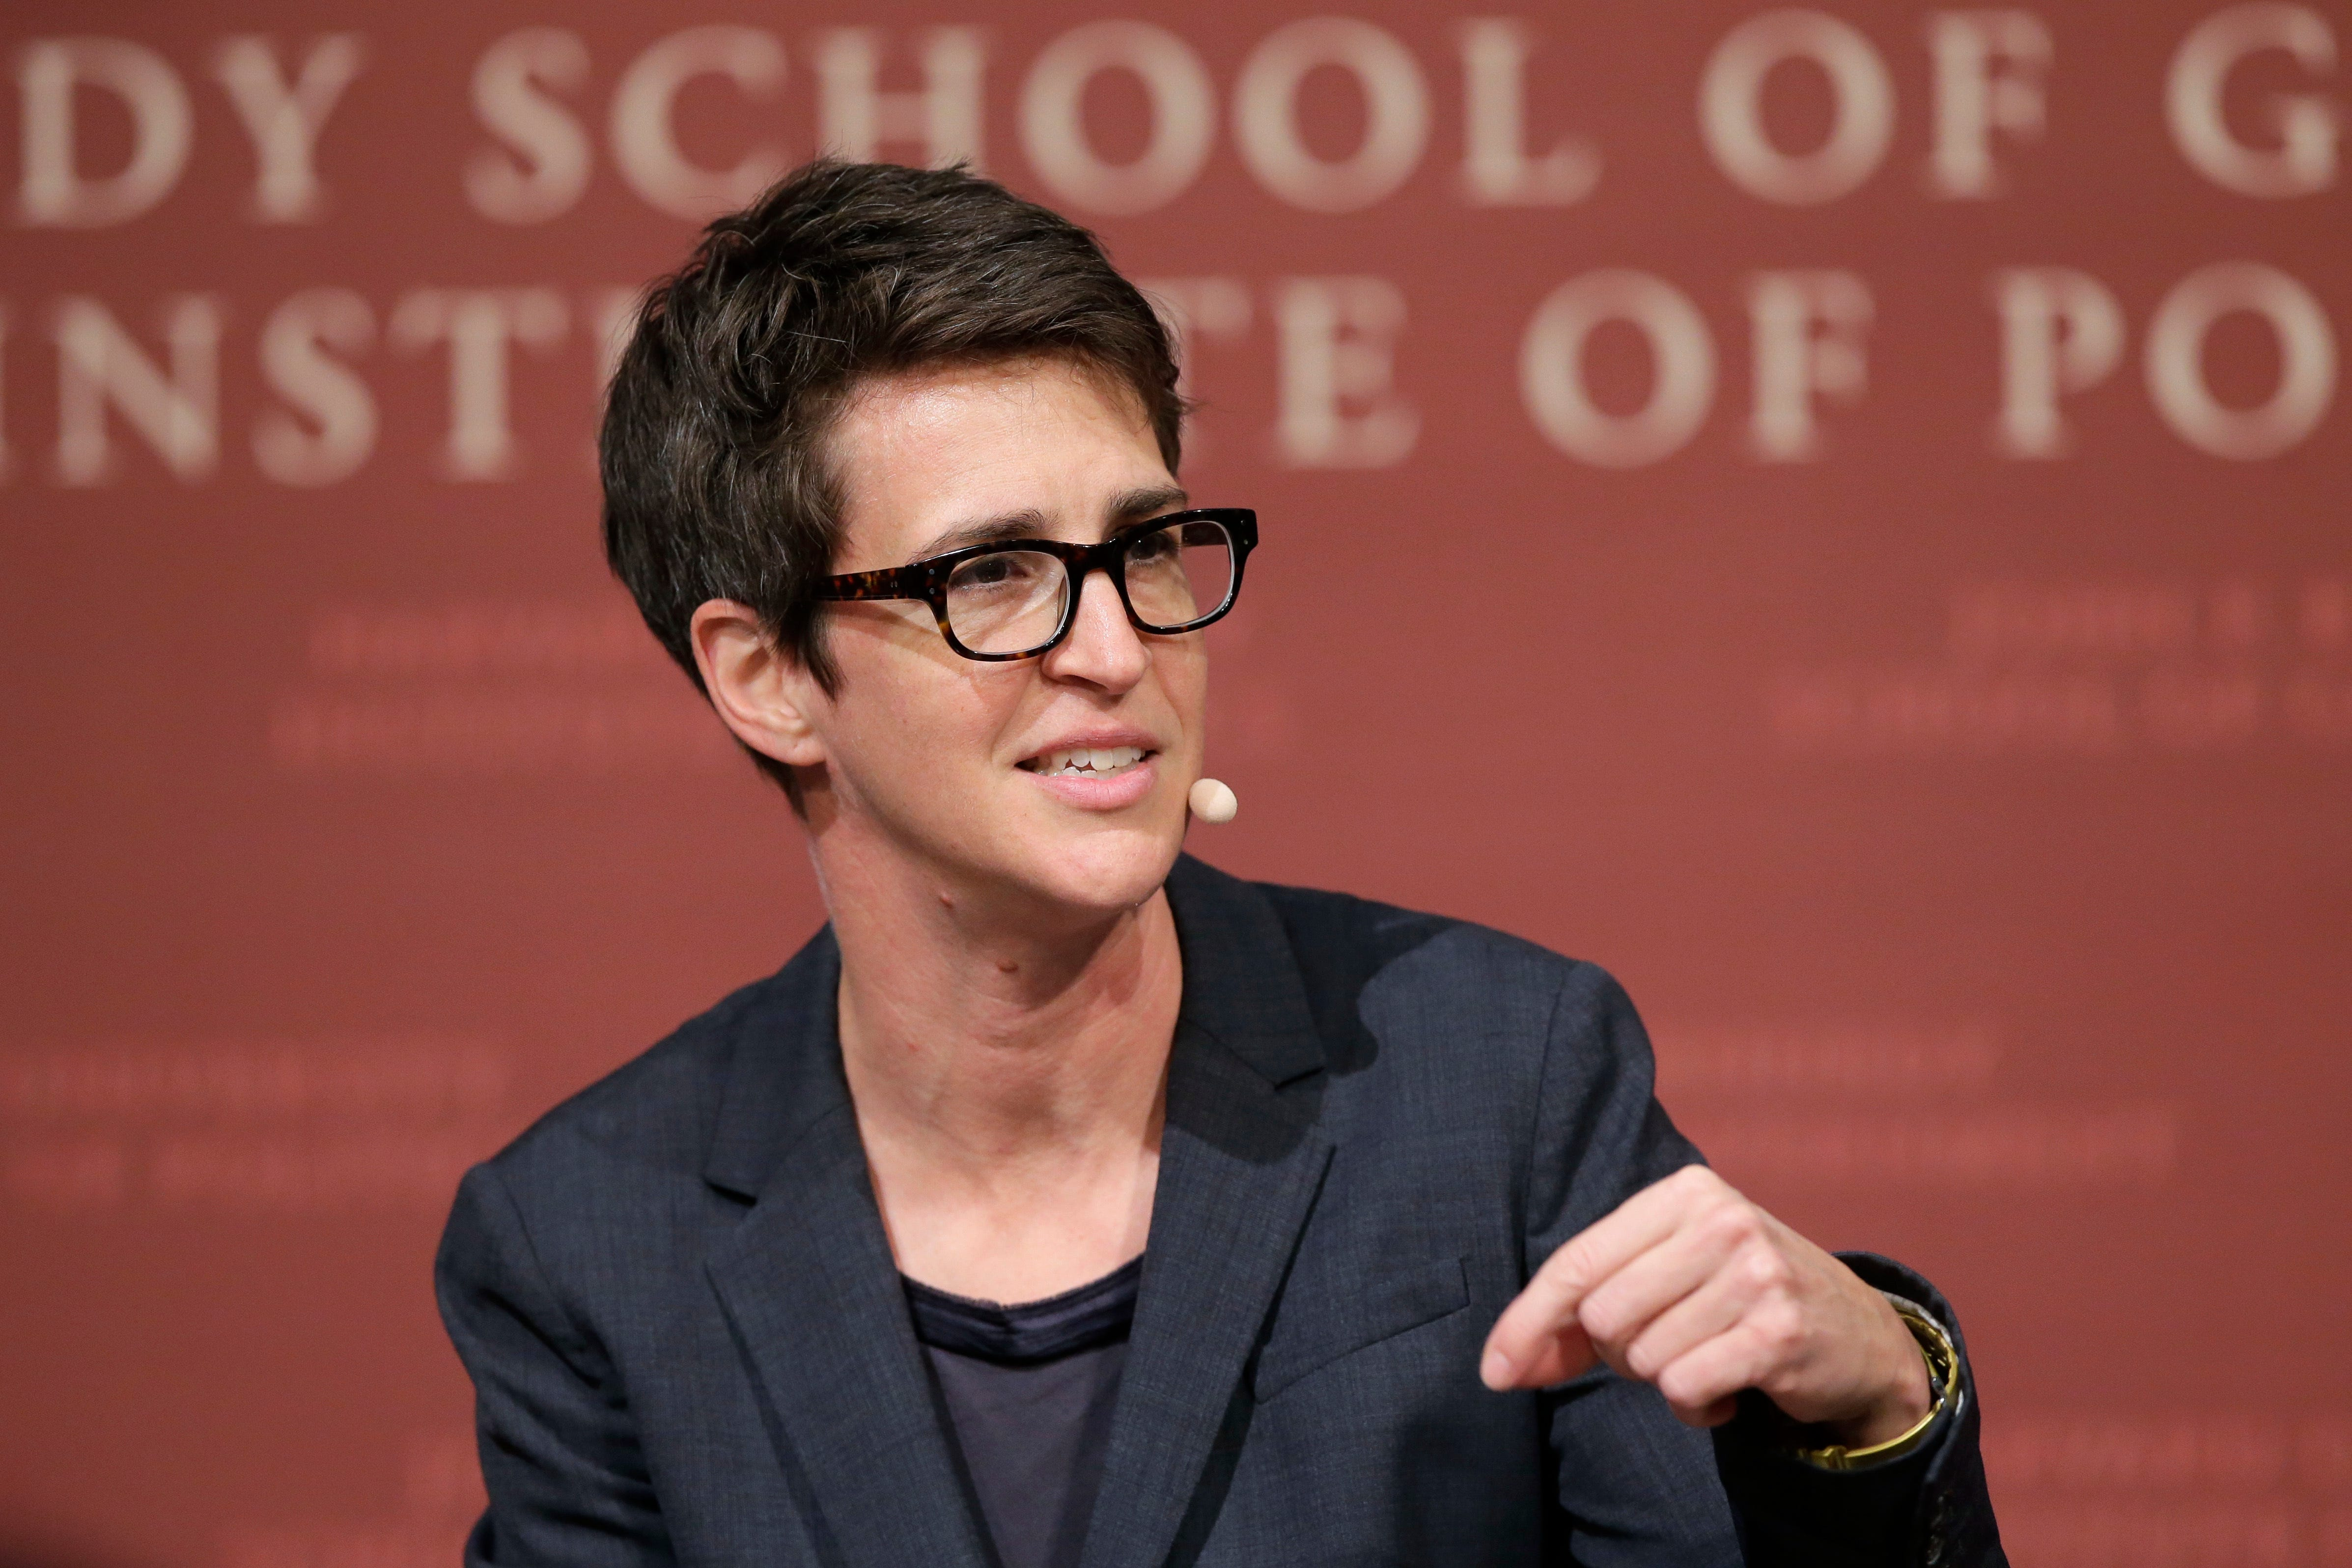 OAN parent company ordered to pay MSNBC, Rachel Maddow $250,000 after losing defamation lawsuit